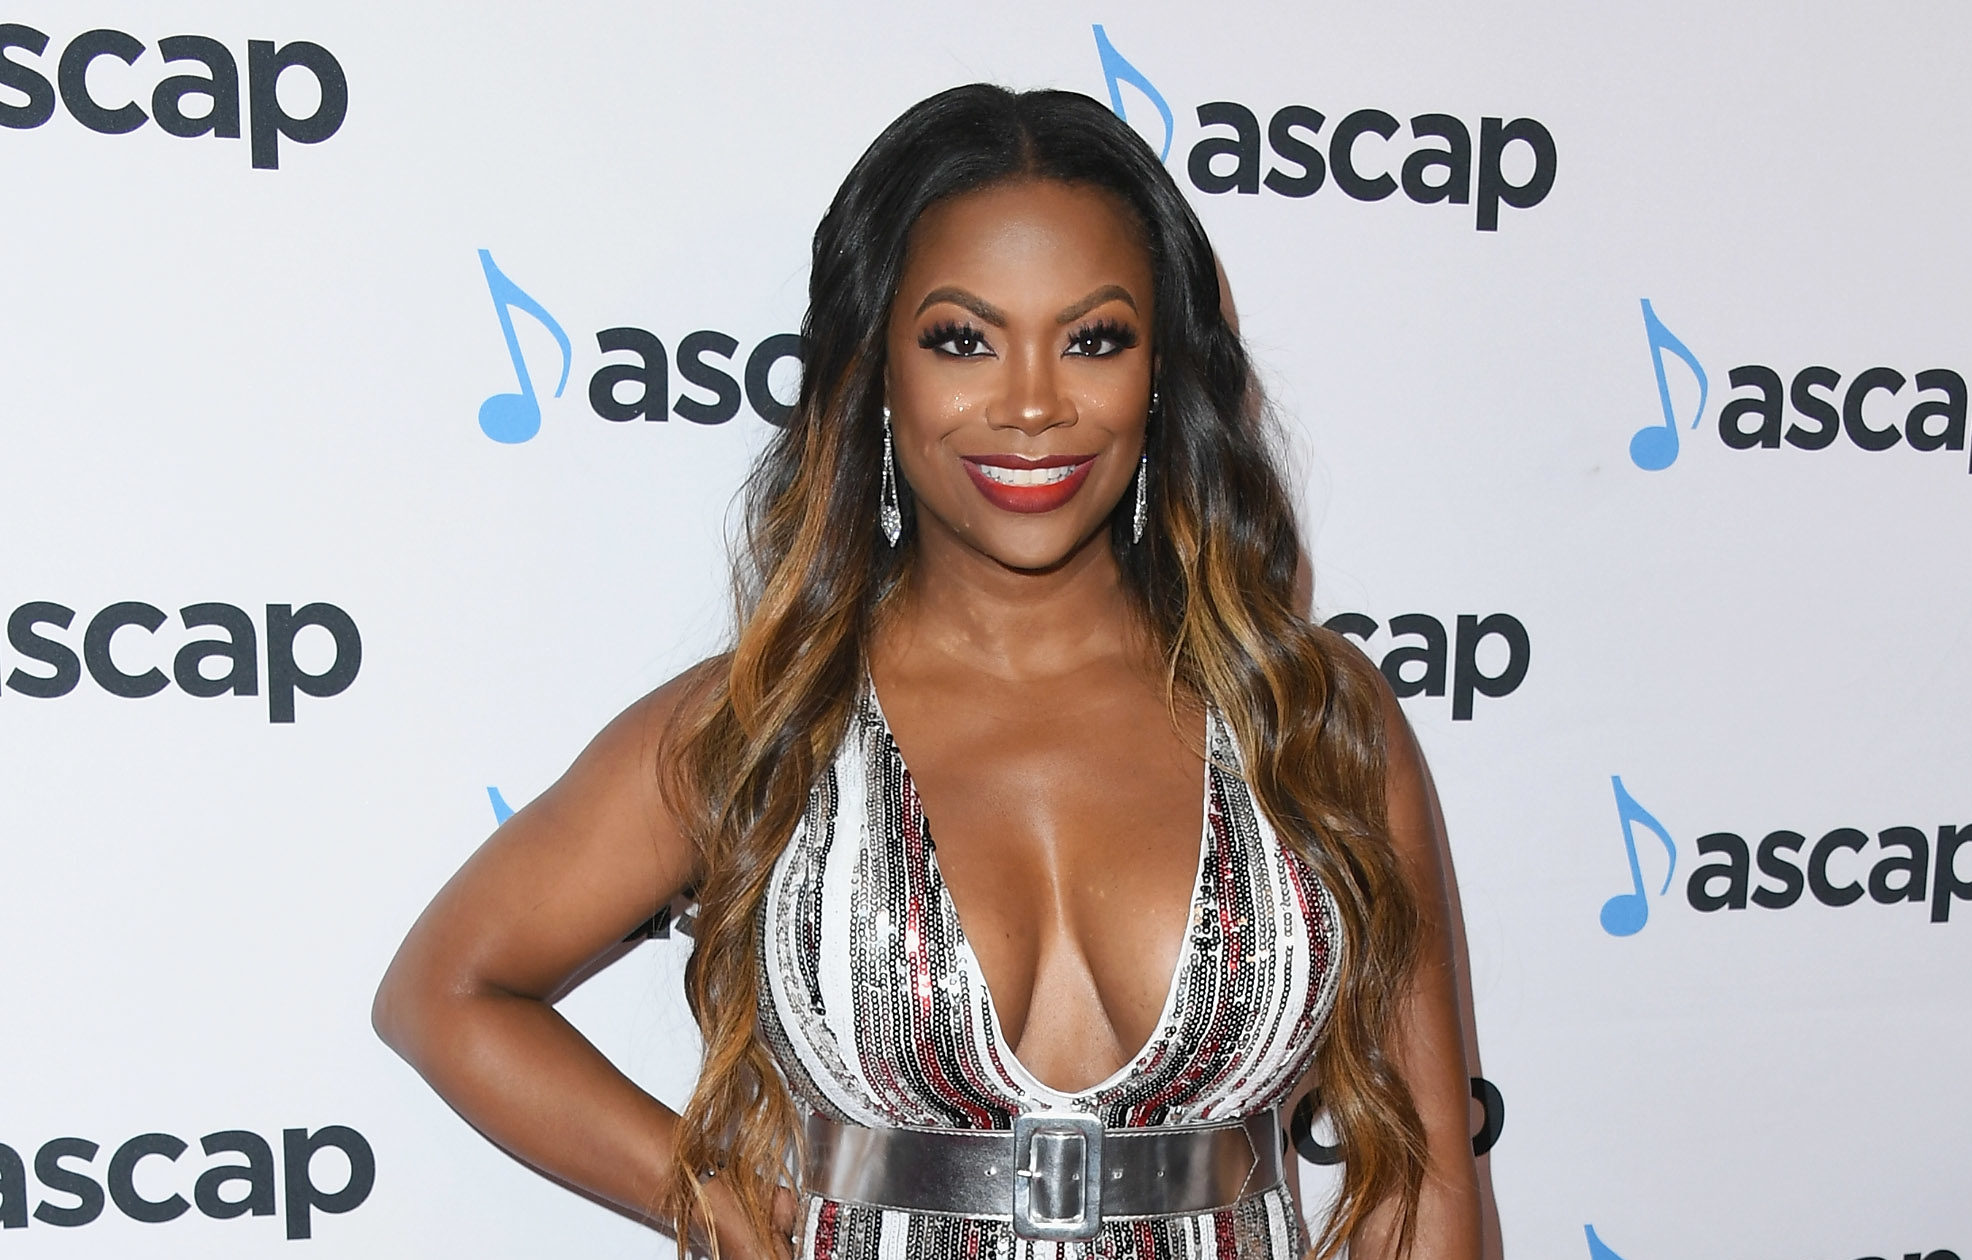 Kandi Burruss Celebrates Aunt Nora - See The Gorgeous Pics Featuring Blaze Tucker And Her 81-Year-Old Auntie!